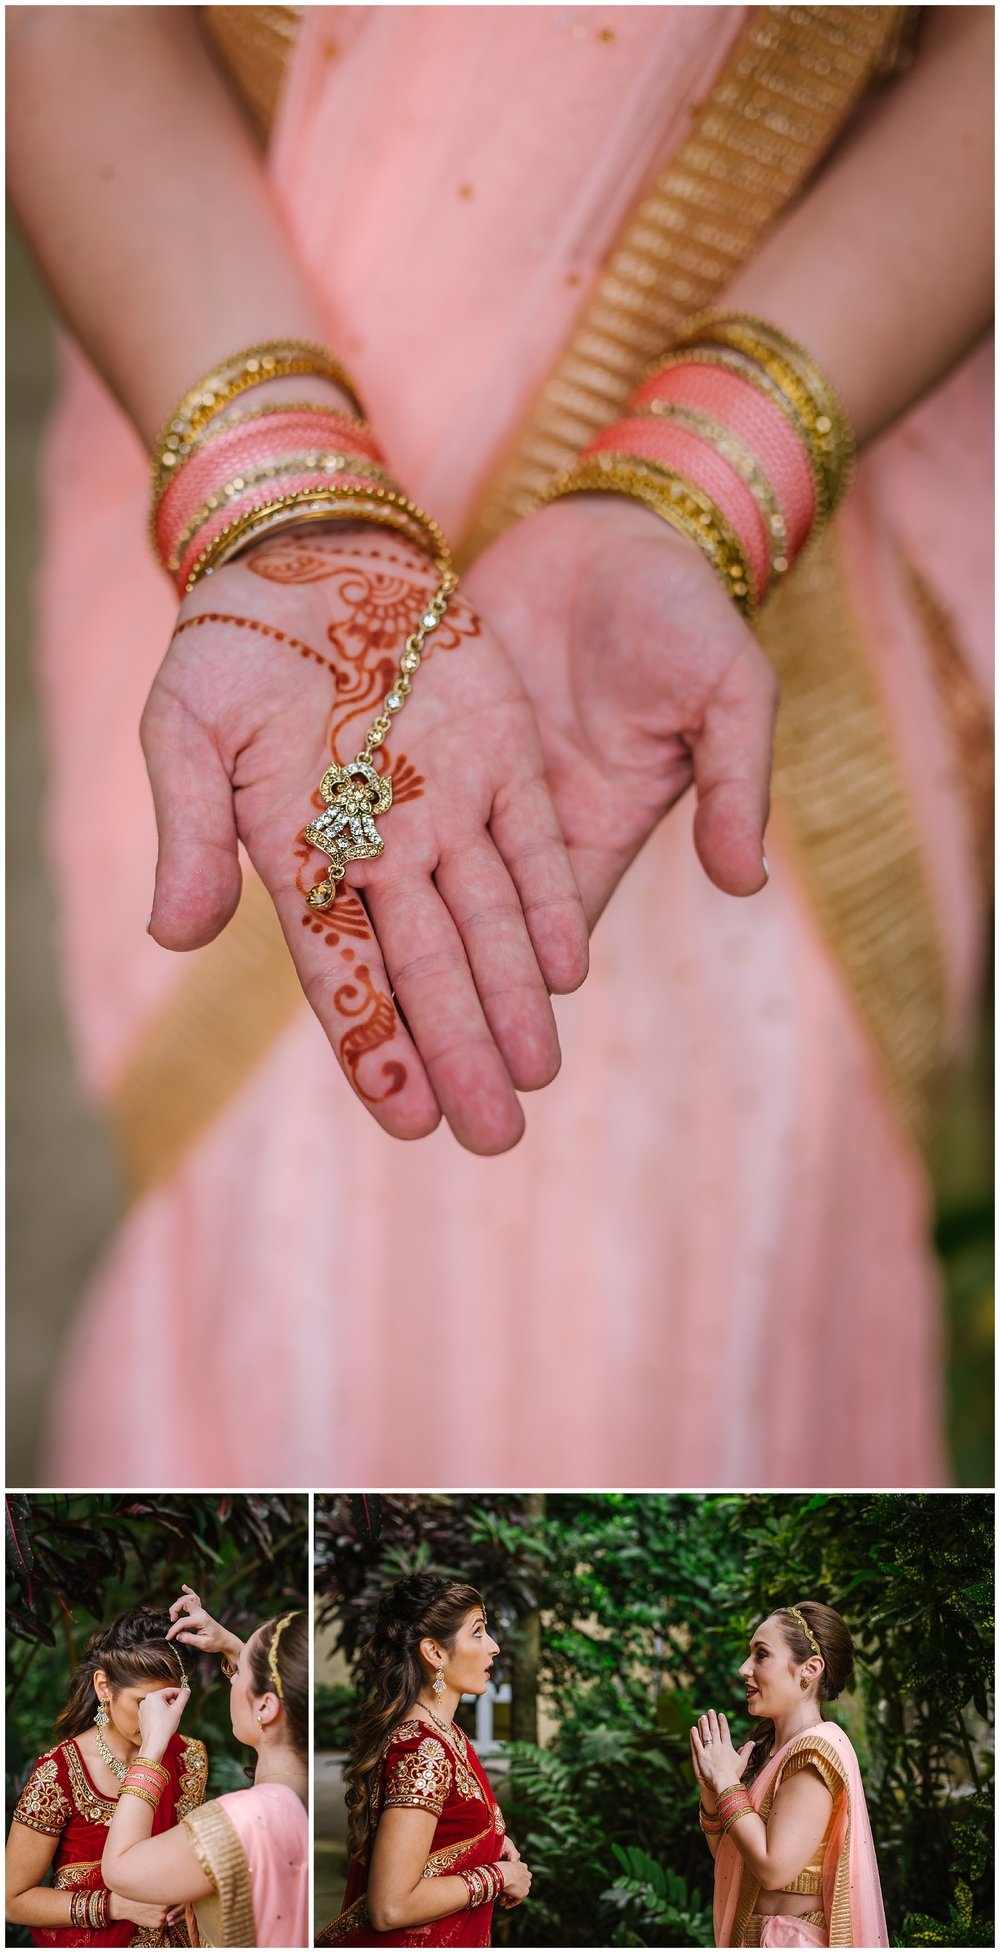 St-pete-indian-wedding-photographer-barat-sunken-gardens_0076.jpg